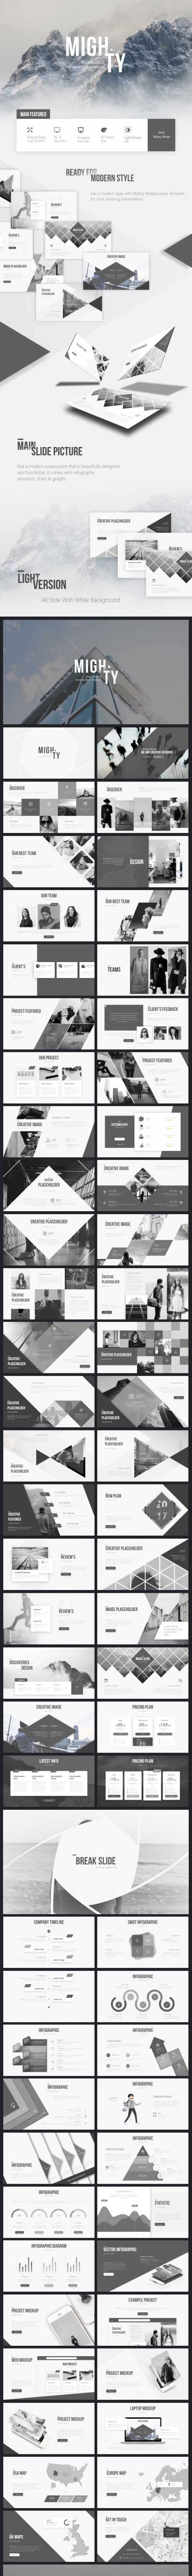 GR - Mighty Multipurpose Presentation Template 19489648